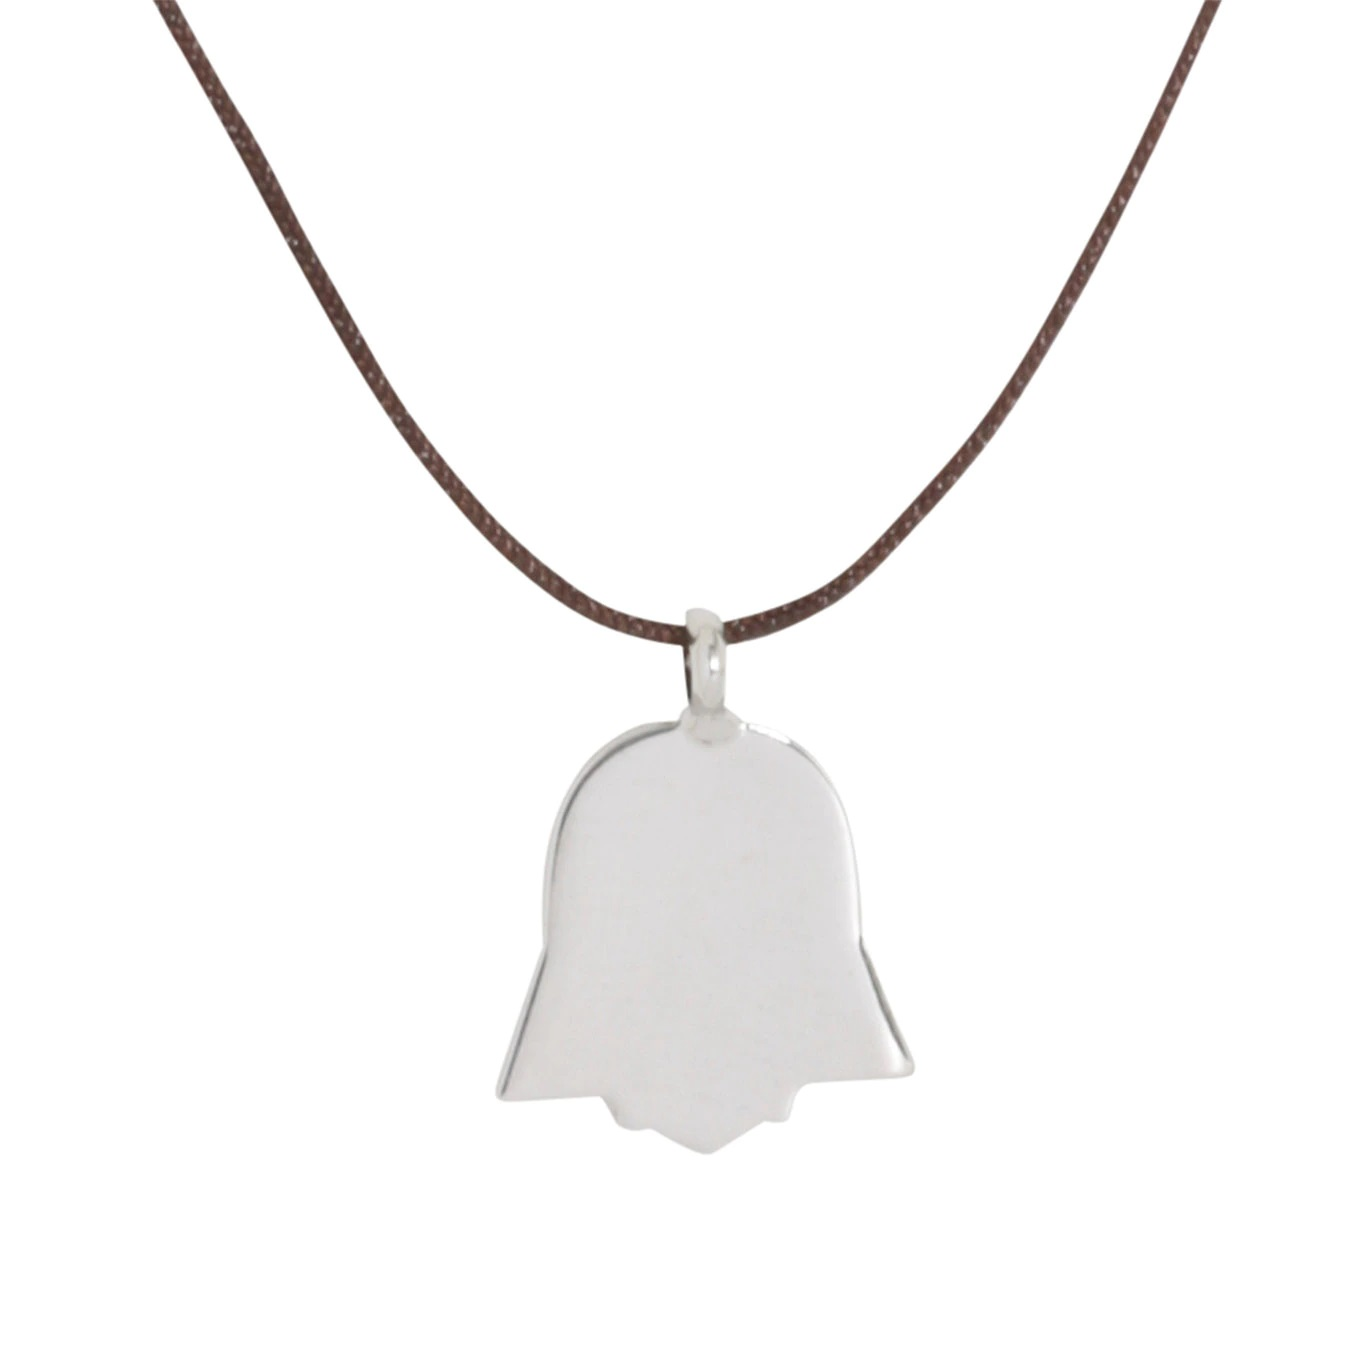 Love And Madness x Star Wars Darth Vader Silhouette Necklace at Hot Topic